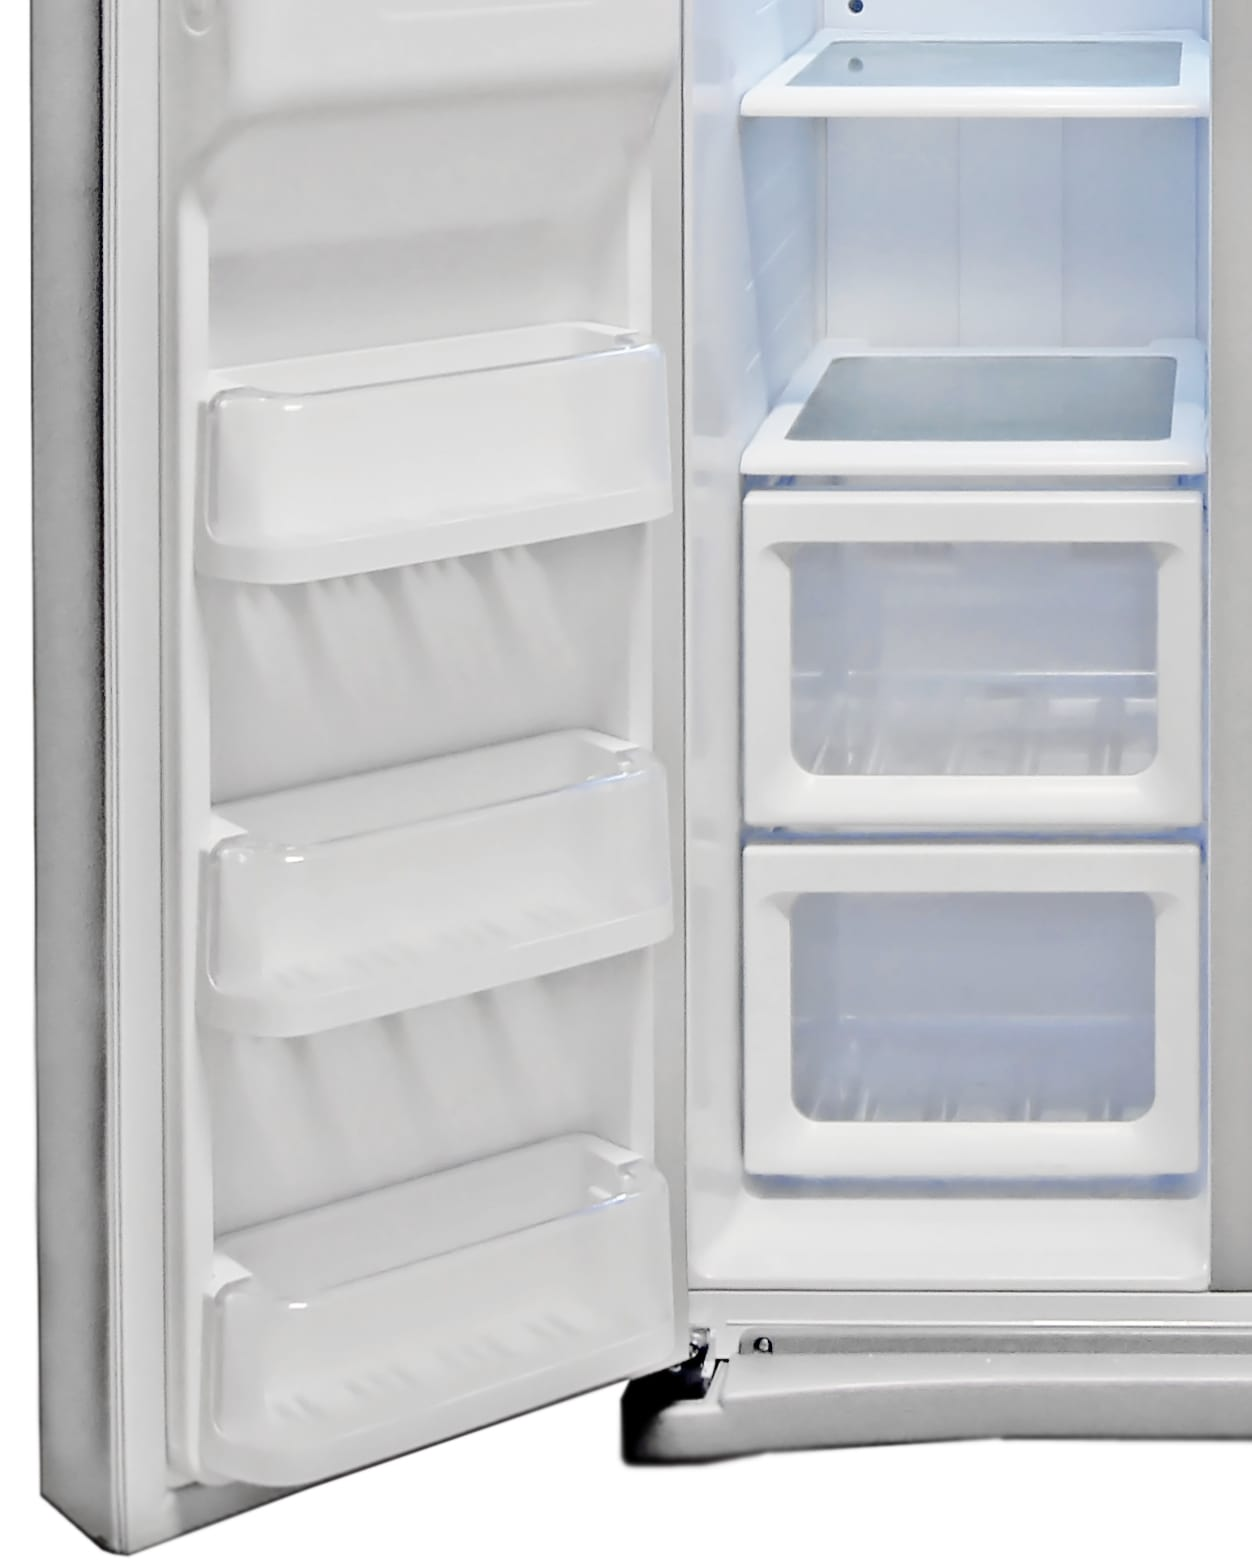 The shelves on the Samsung RS25H5121SR's freezer door tip forward for easy access.